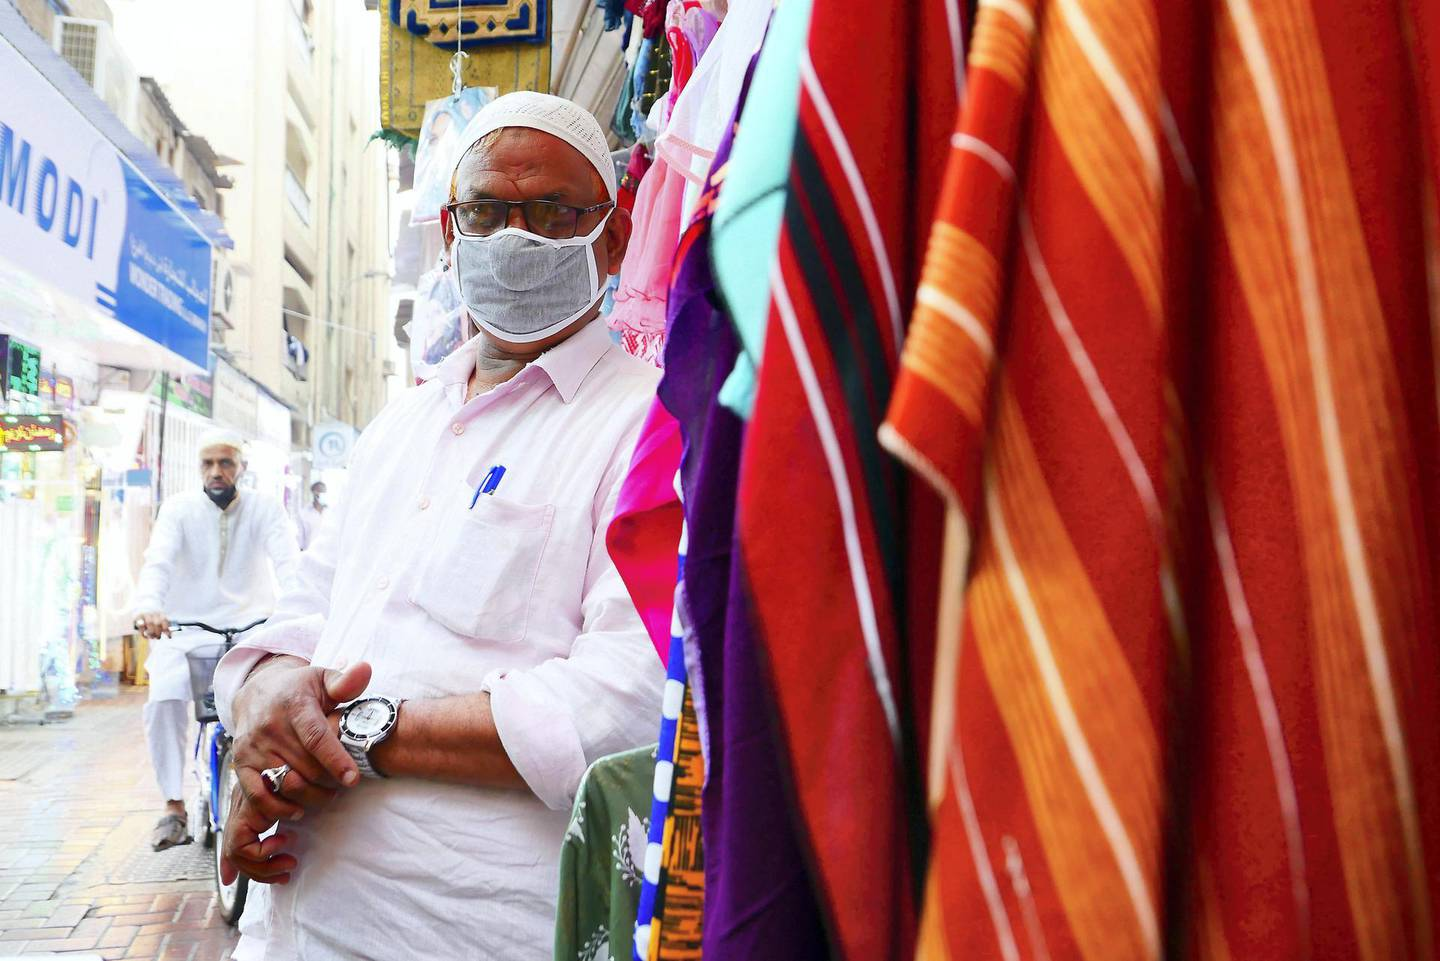 Moidu Parlat outside his shop in Naif area in Deira Dubai during the evening on April 21, 2021. Pawan Singh / The National. Story by Sarwat Nasir